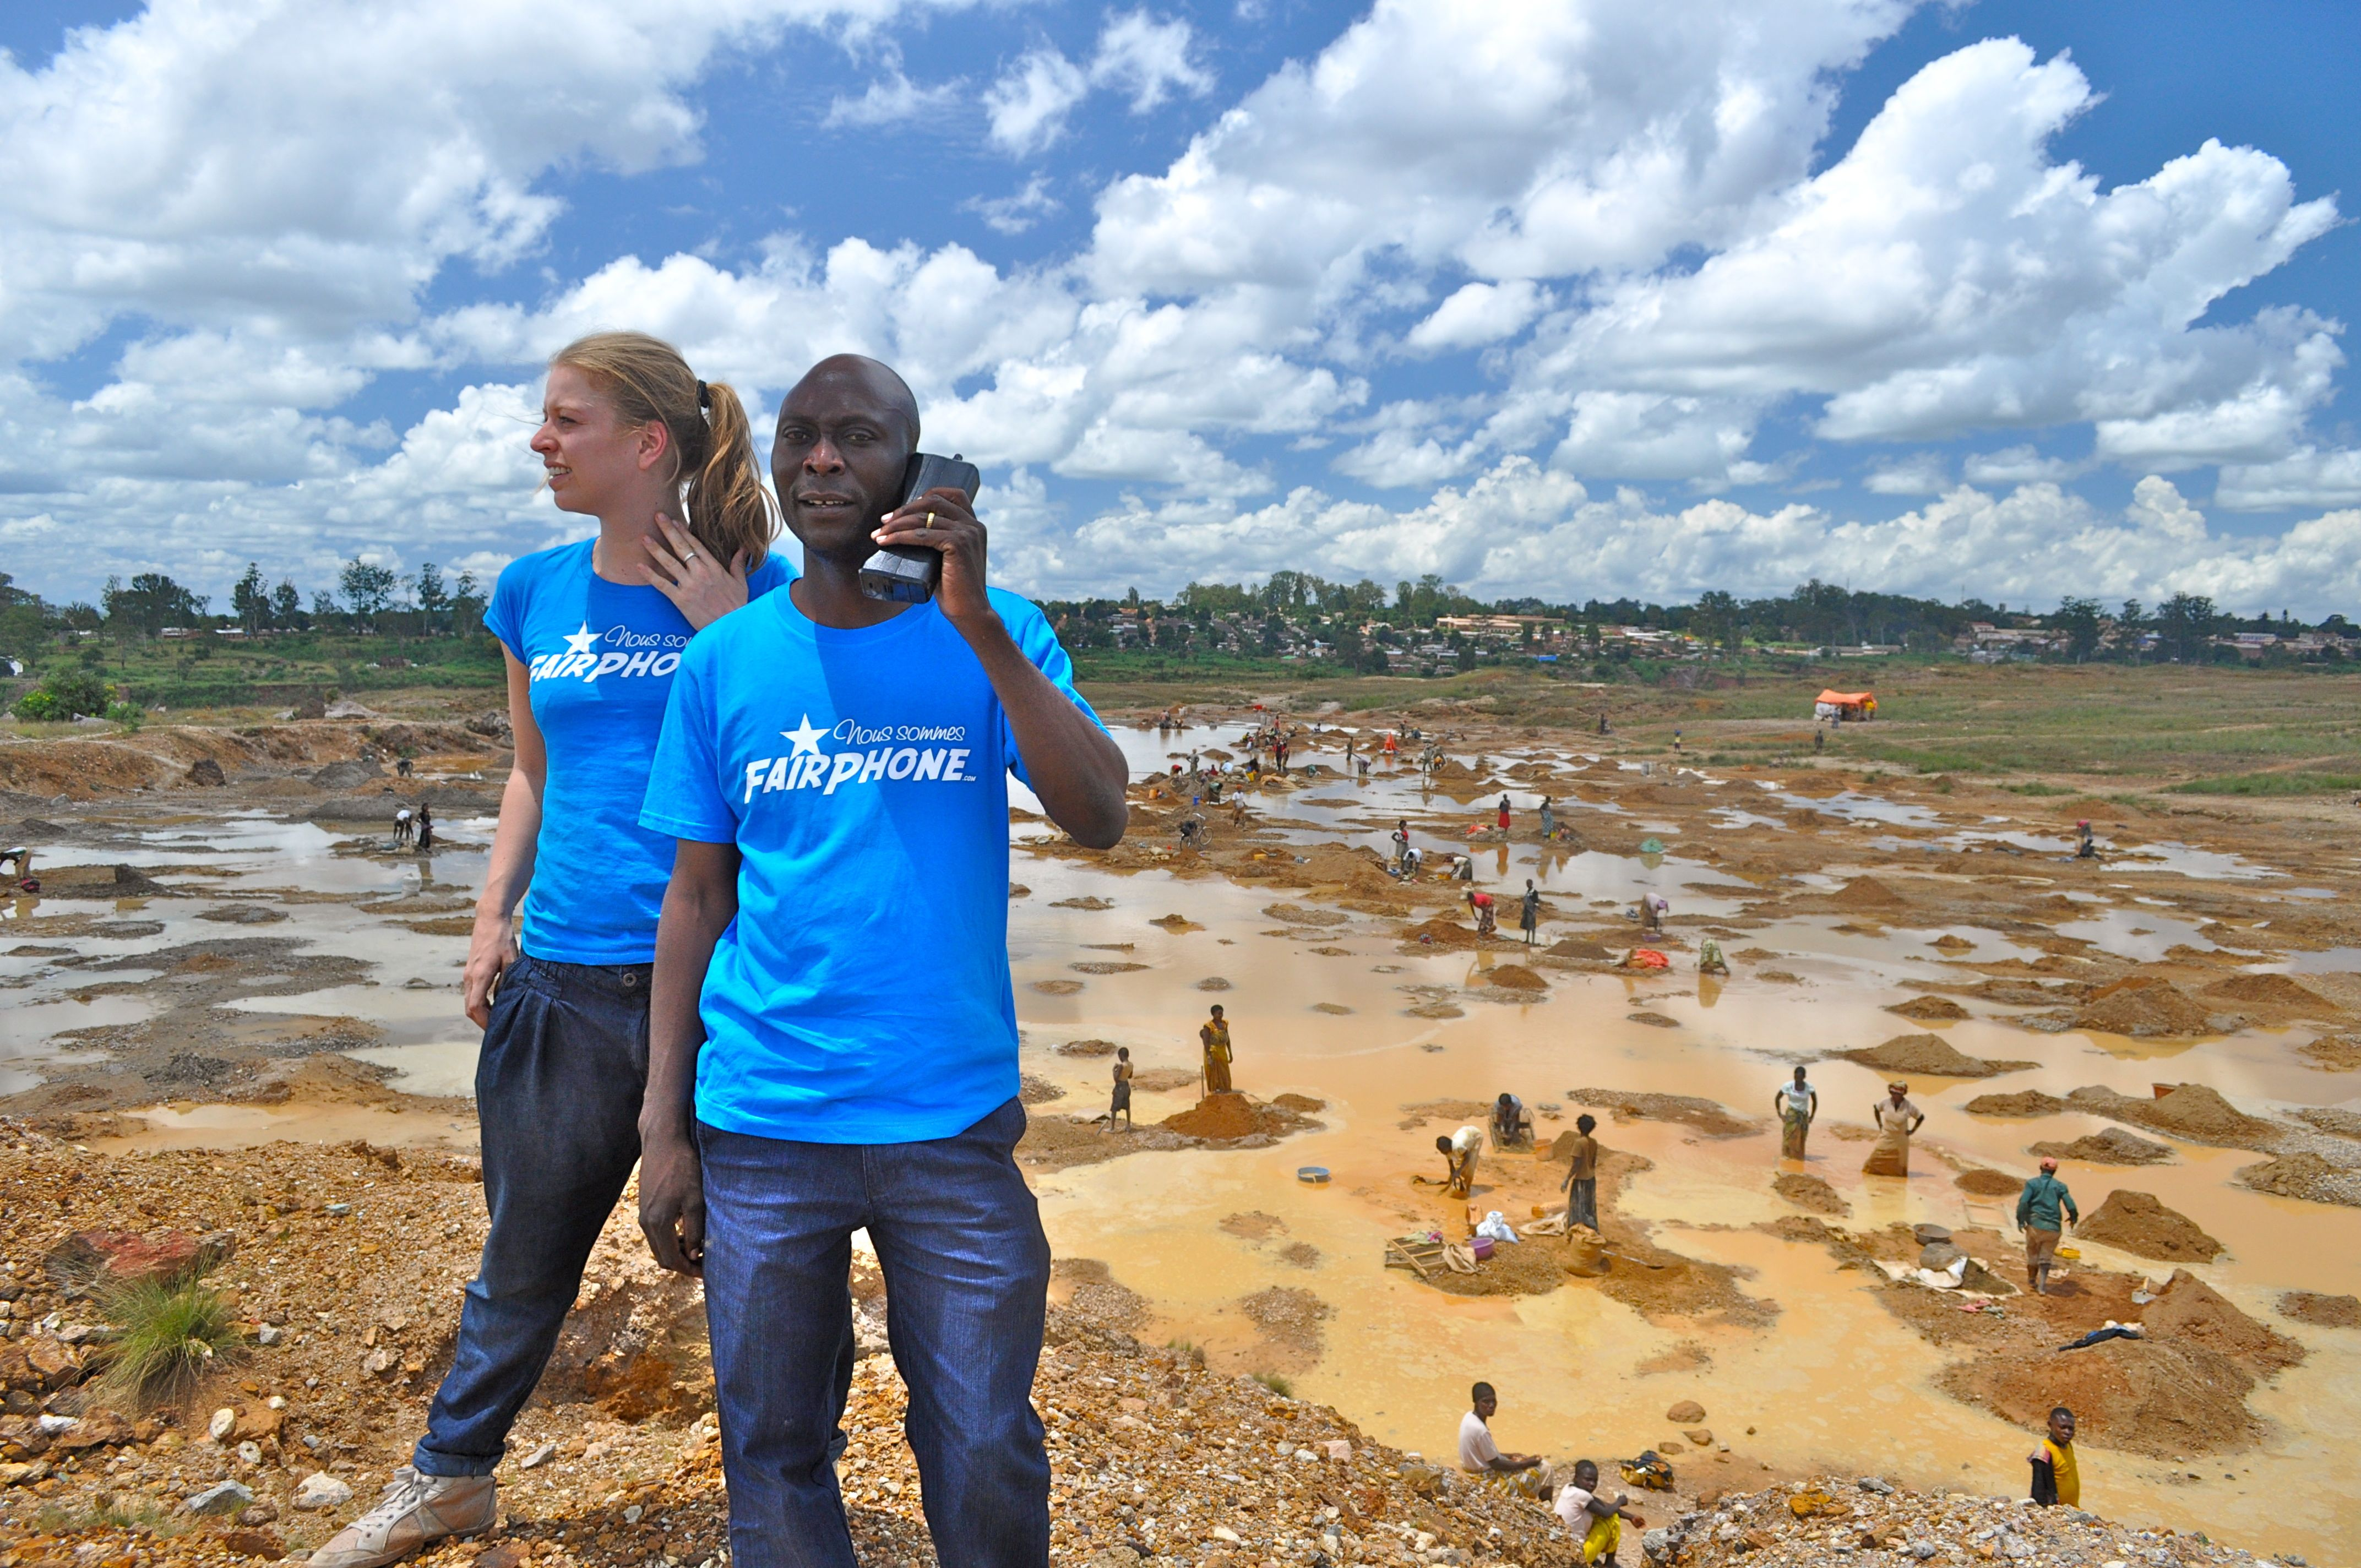 Fairphone_greetings from kolwezi